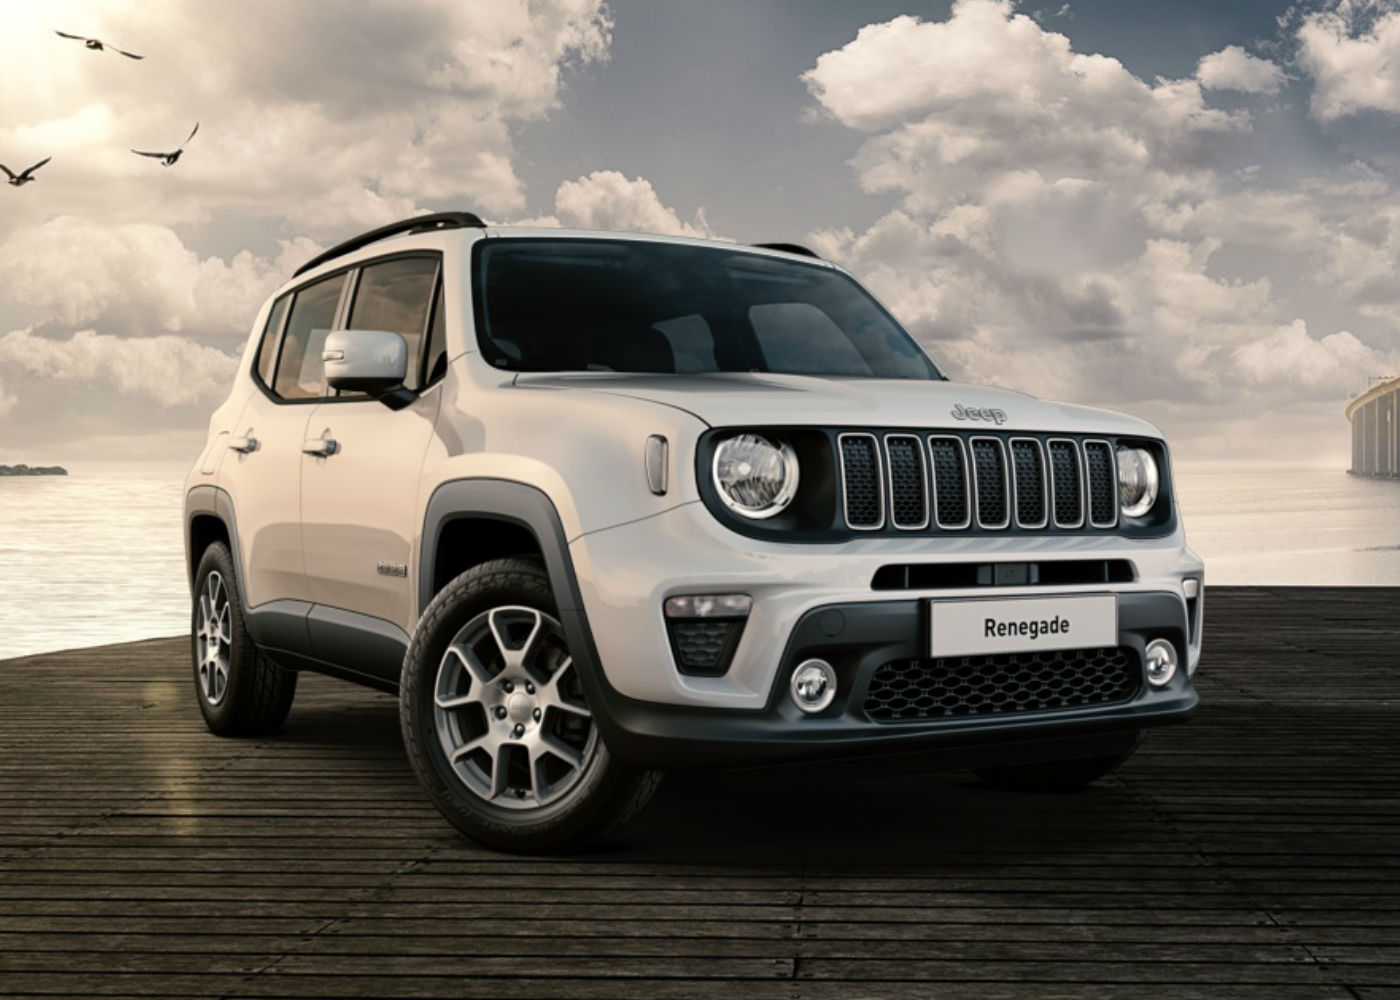 JEEP RENEGADE 1.6 MJT 120 CV LIMITED PACK LED - Spinautomobili